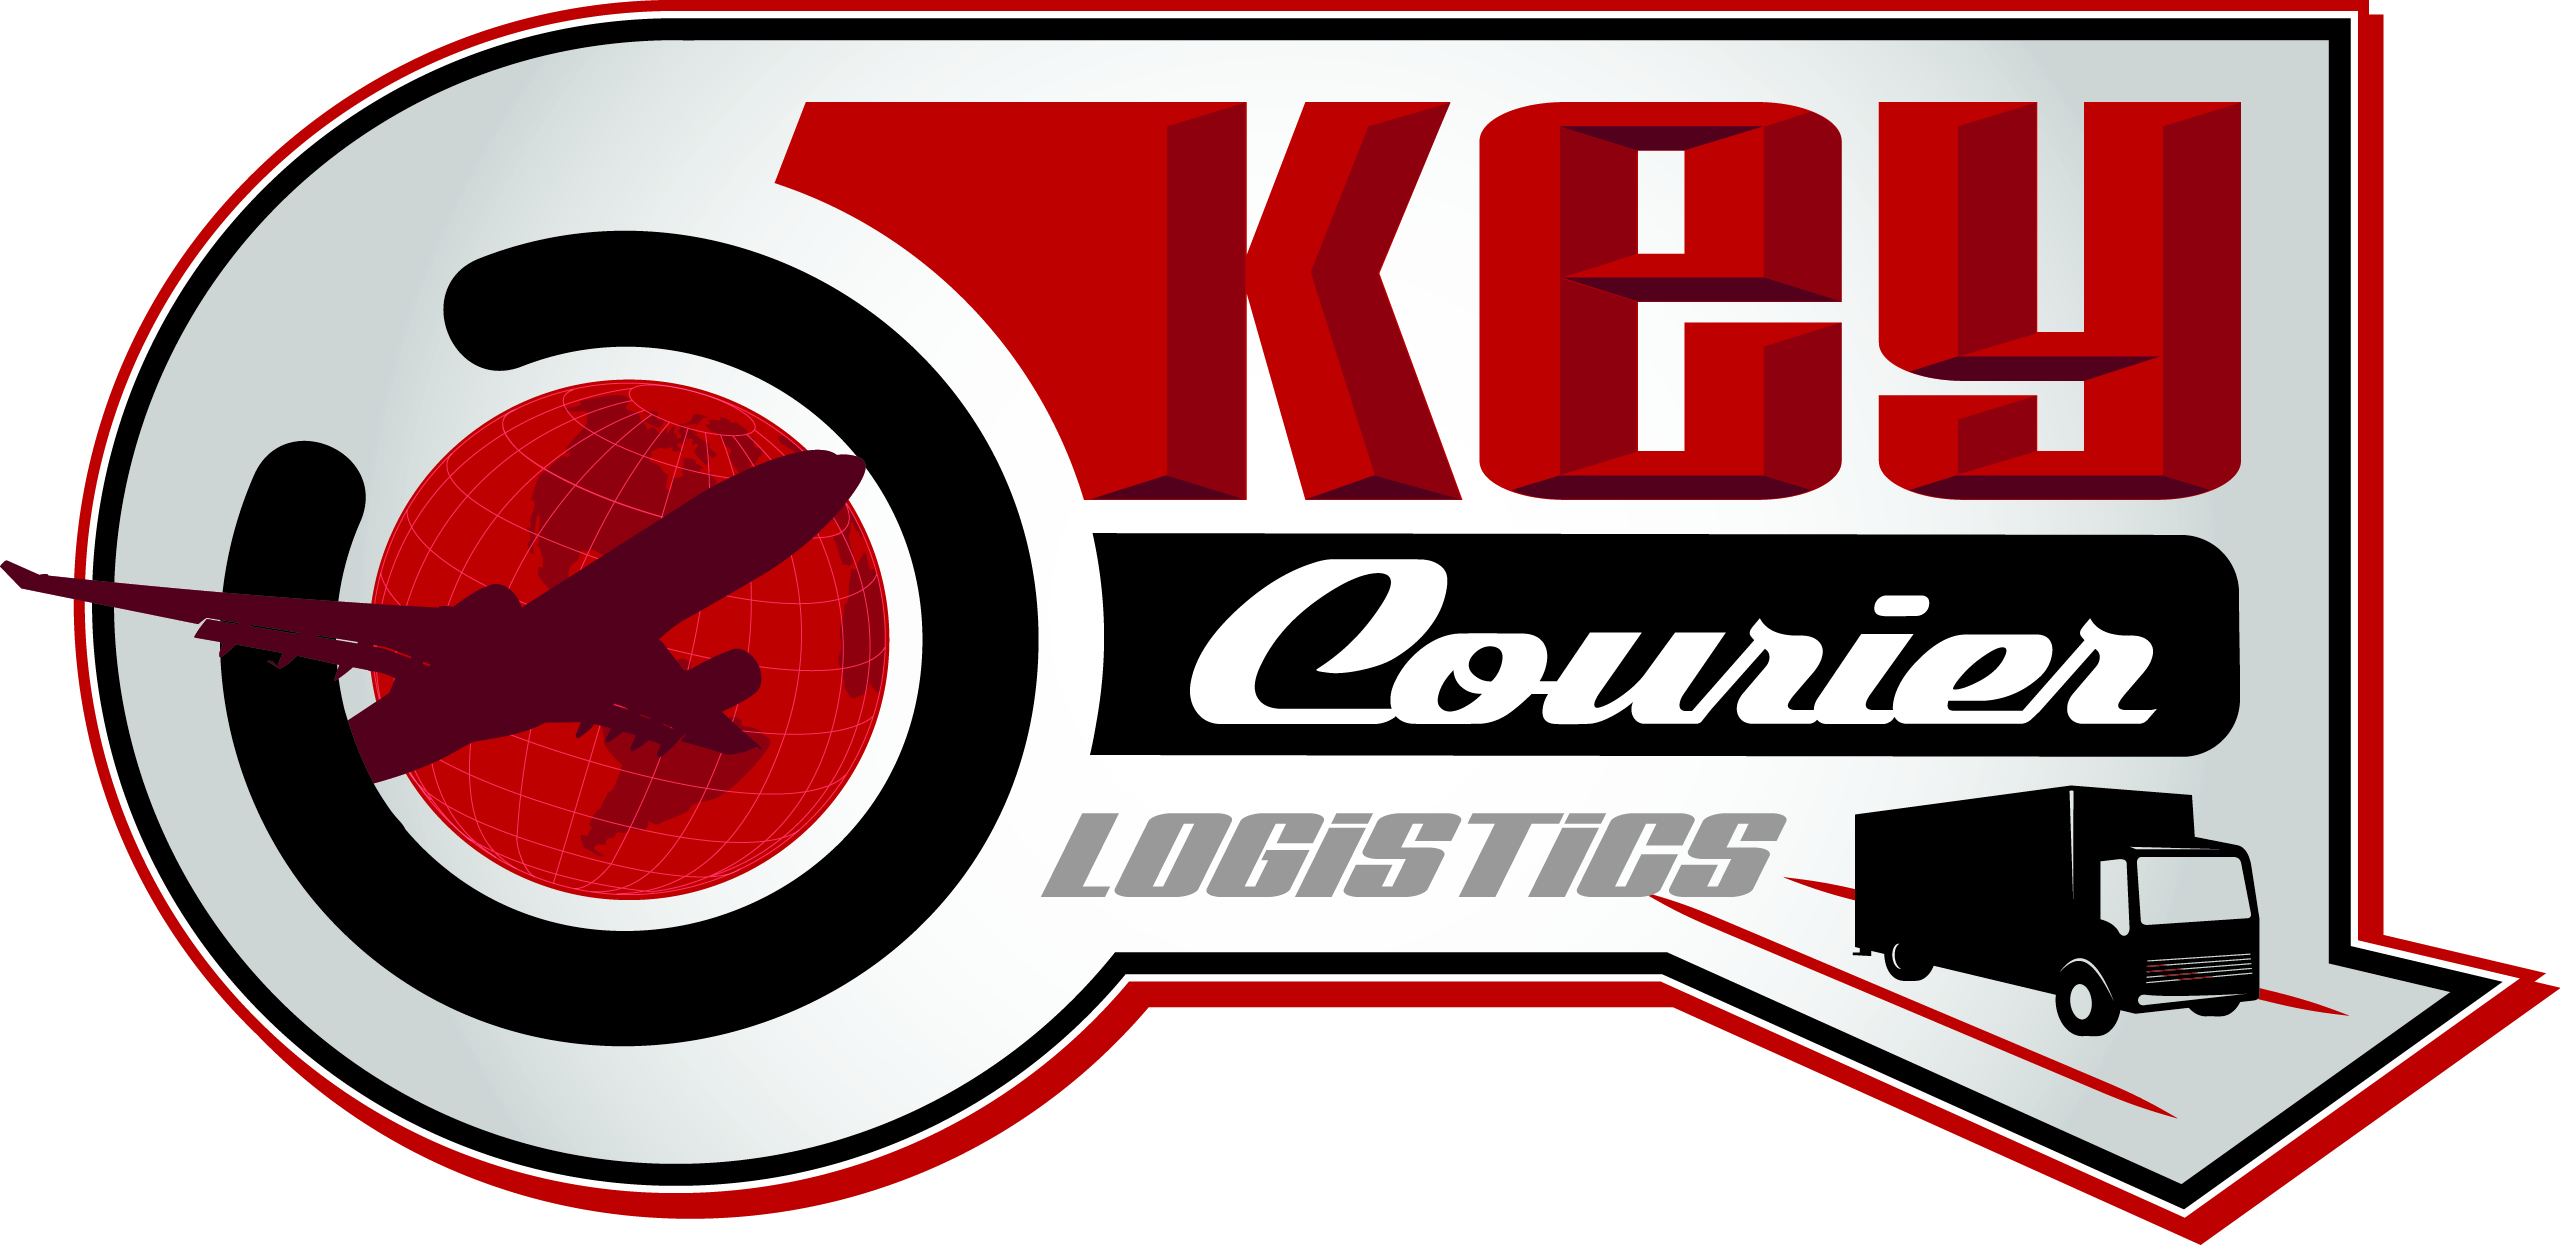 KEY COURIER LOGISTICS, LLC